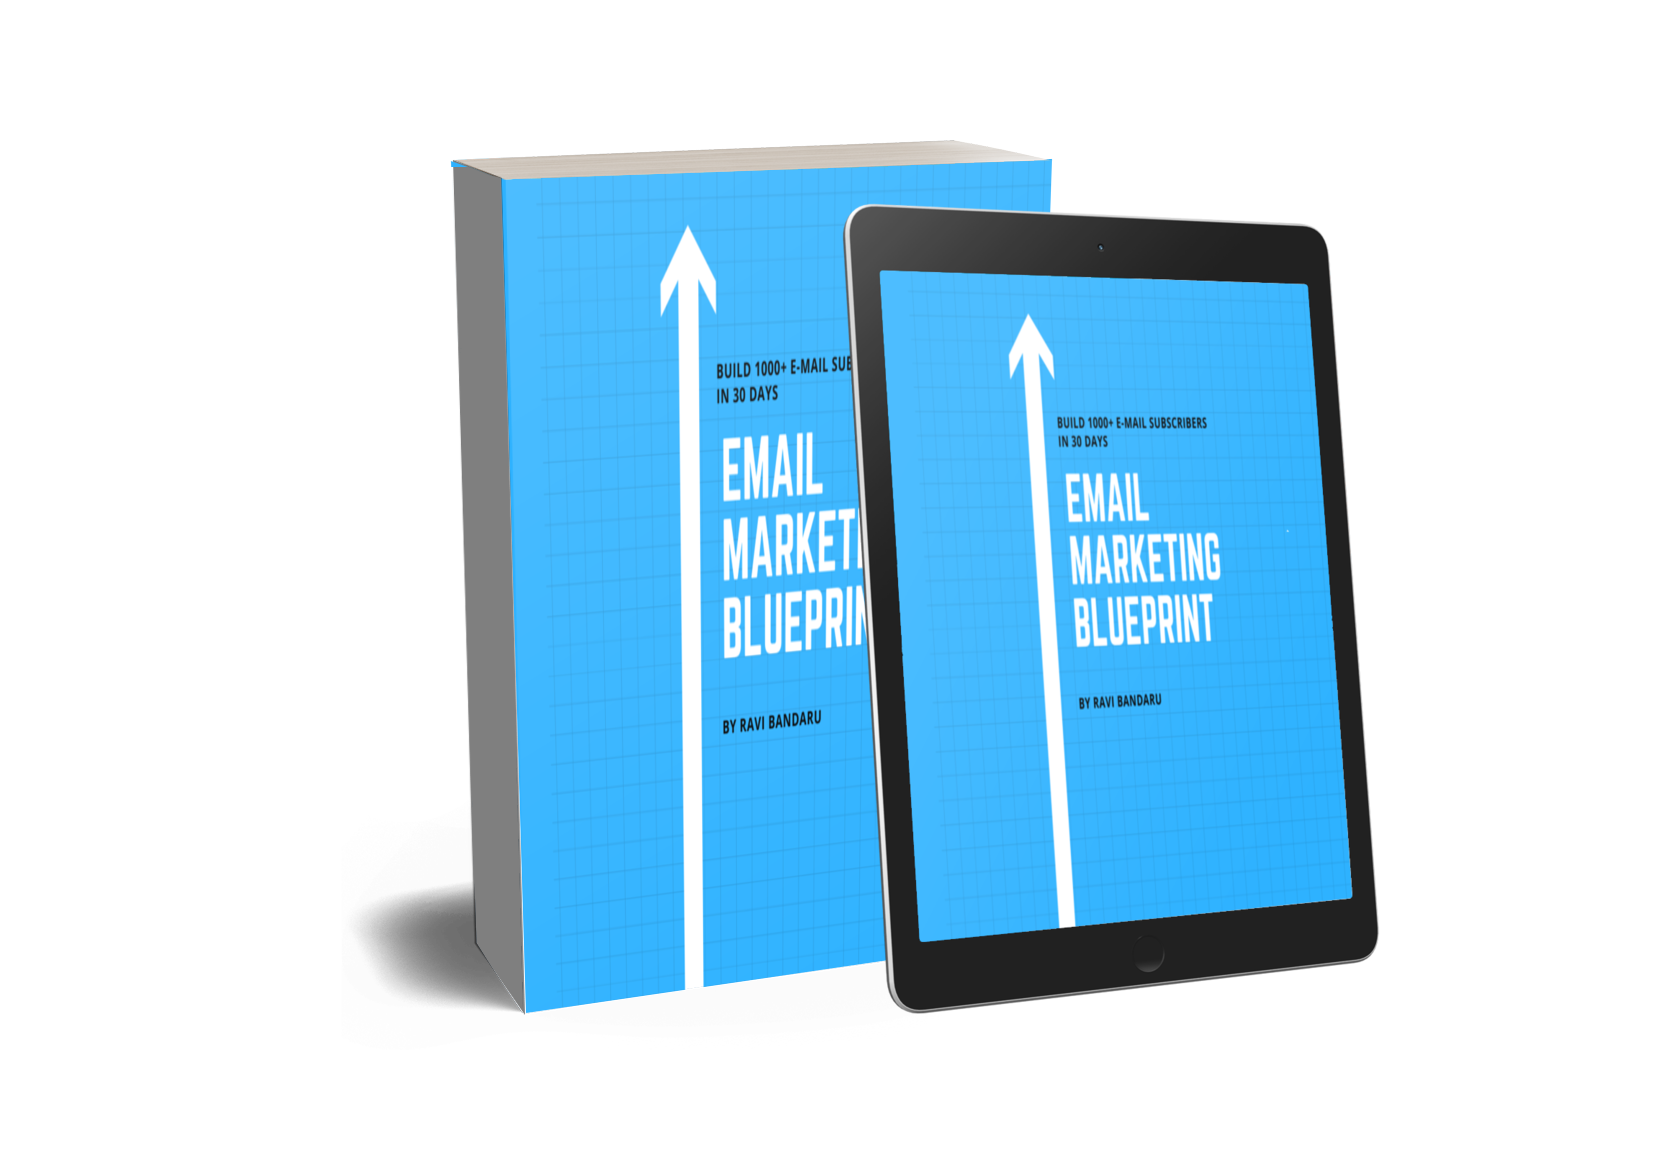 E-Mail Marketing Blueprint